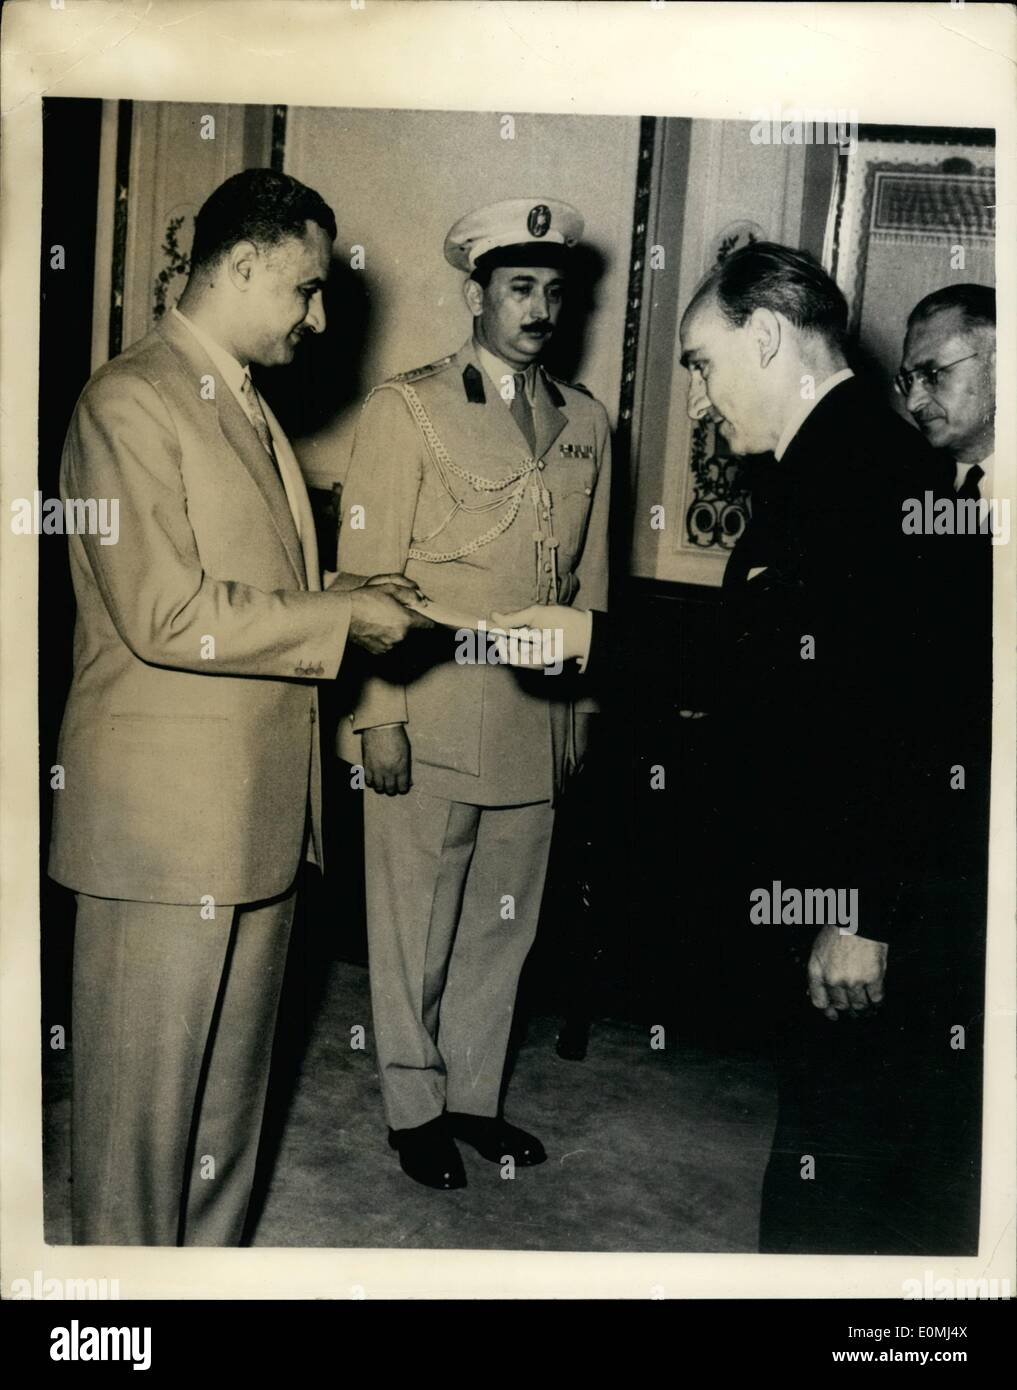 Aug. 08, 1955 - New British Ambassador in Egypt Presents Credentials To Premier Nasser. Keystone Photo Shows:- Sir - Stock Image